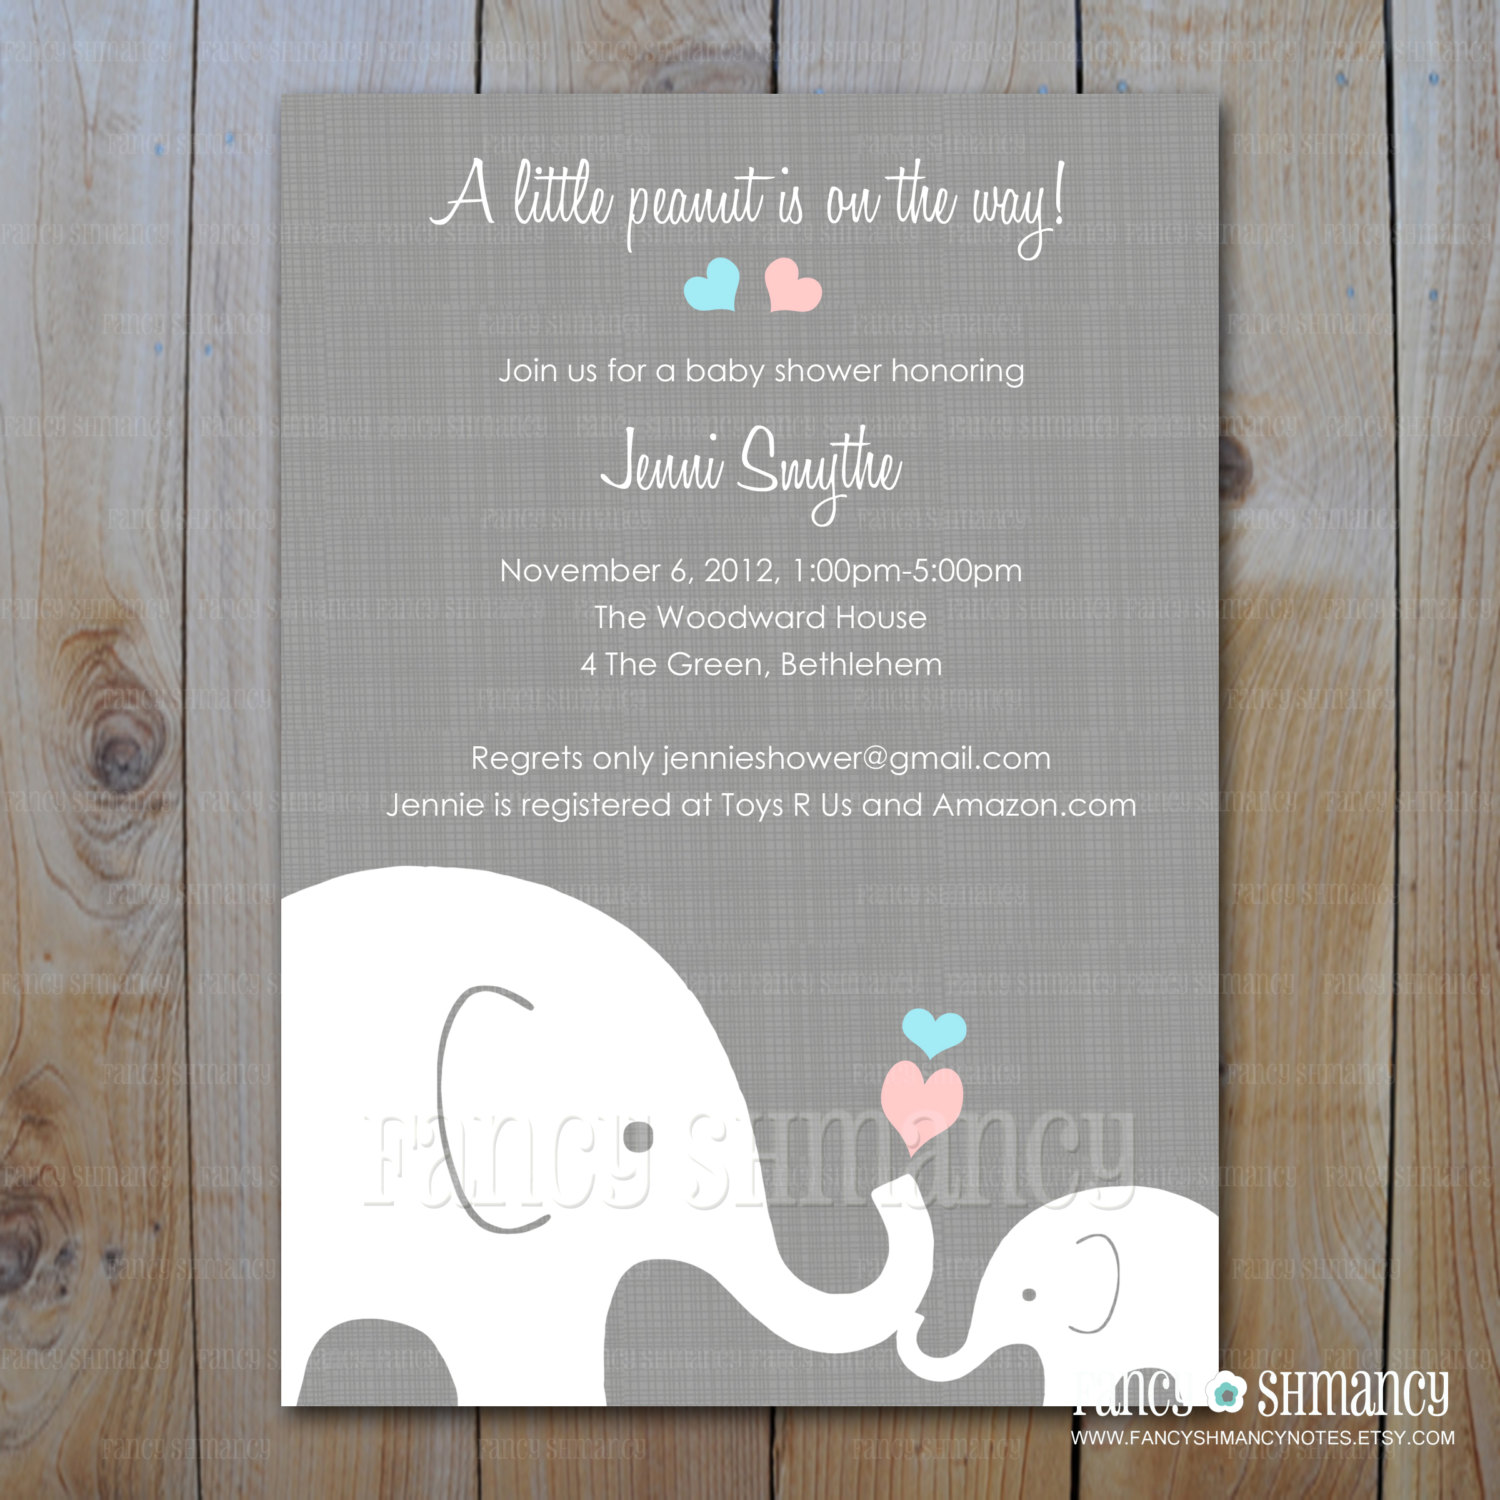 Full Size of Baby Shower:inspirational Elephant Baby Shower Invitations Photo Concepts Baby Shower Invitations Astonishing Elephant Baby Shower Baby Shower Invitations Terrific Elephant Baby Shower Invitations To Create Your Own Baby Shower Invitation